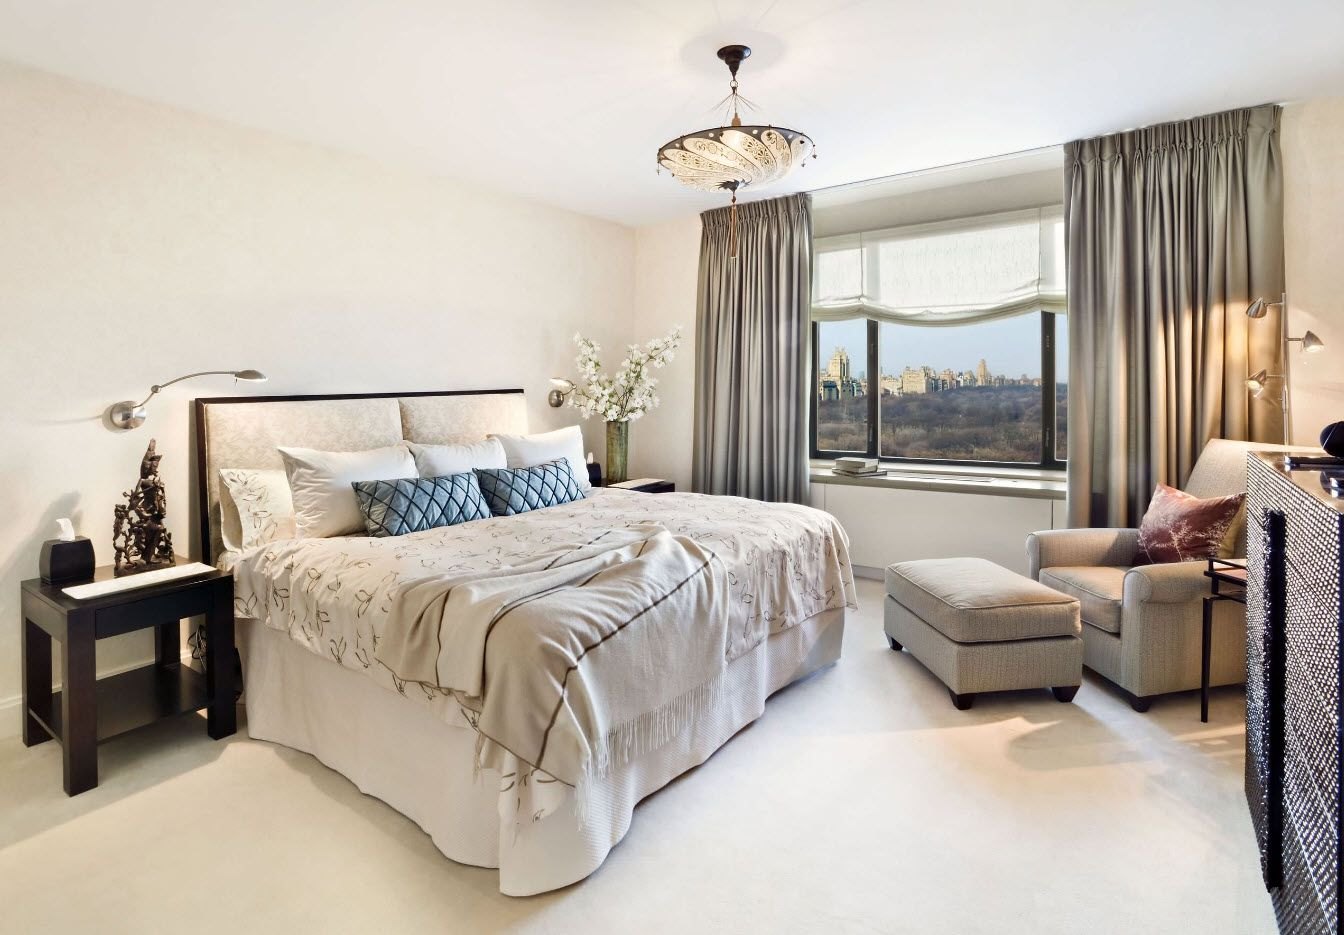 Gorgeous light color theme for the bedroom with gray drapes